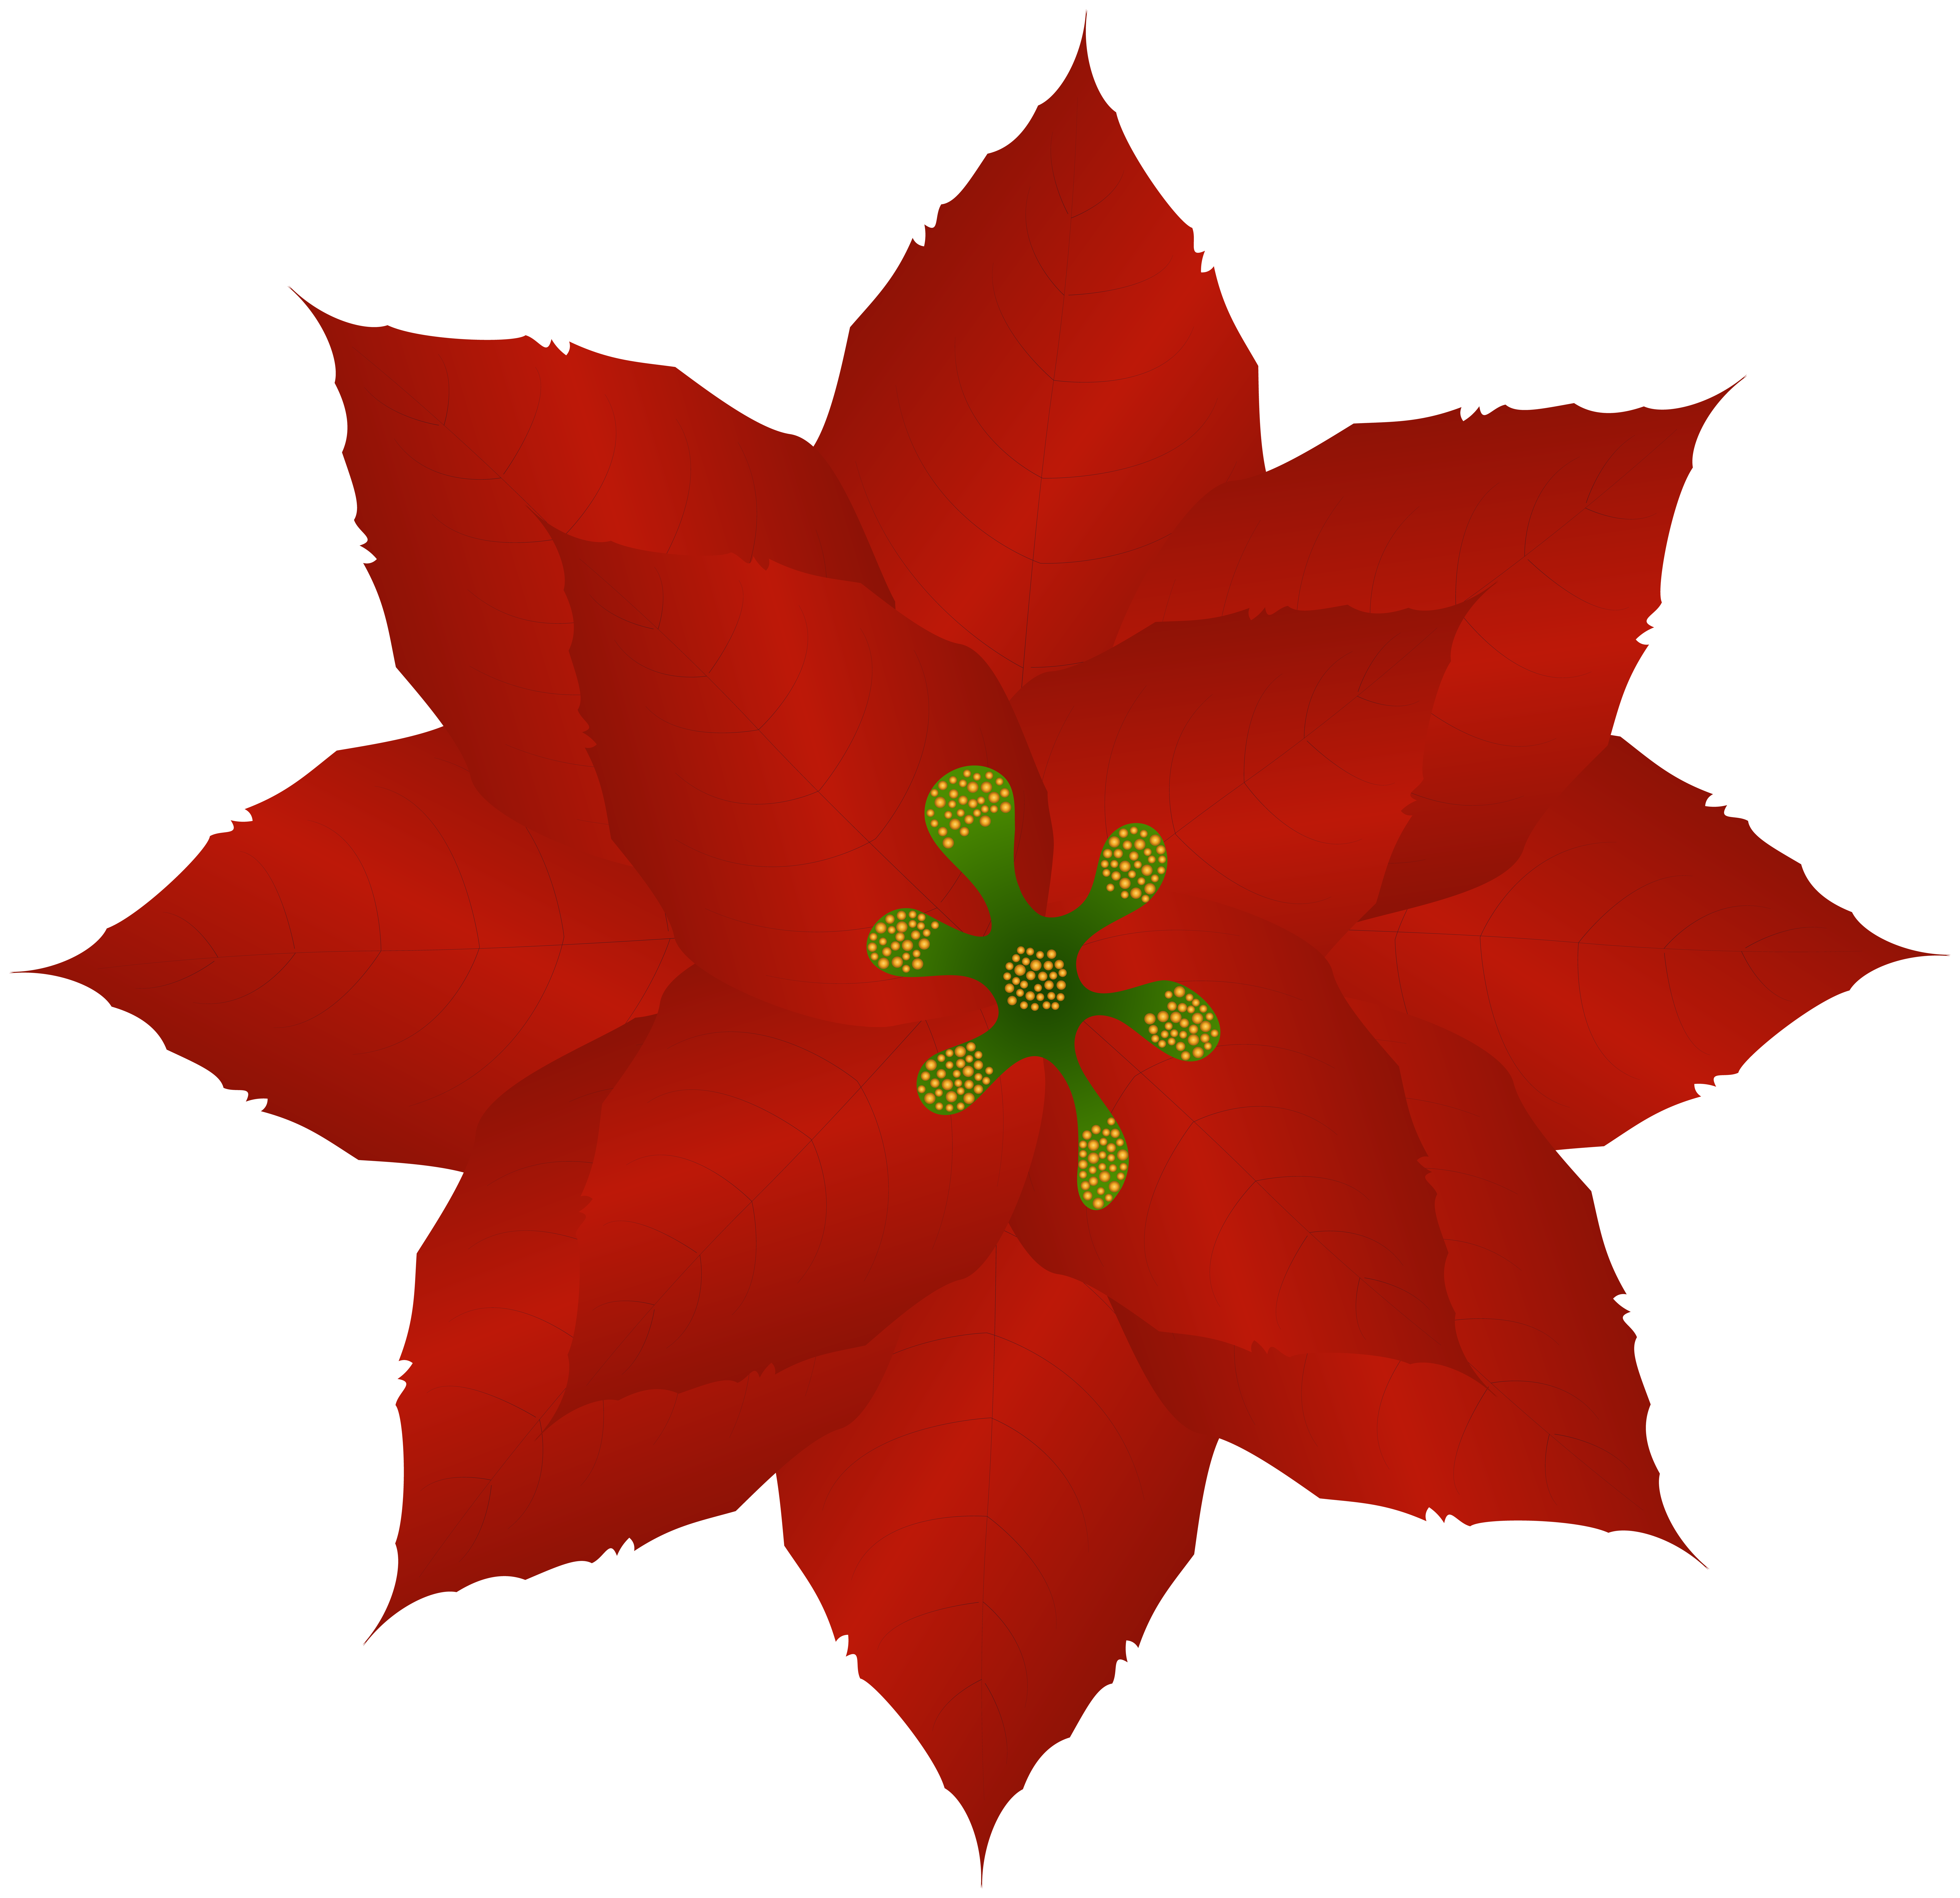 Poinsettia art image gallery. Poinsetta clip picture freeuse